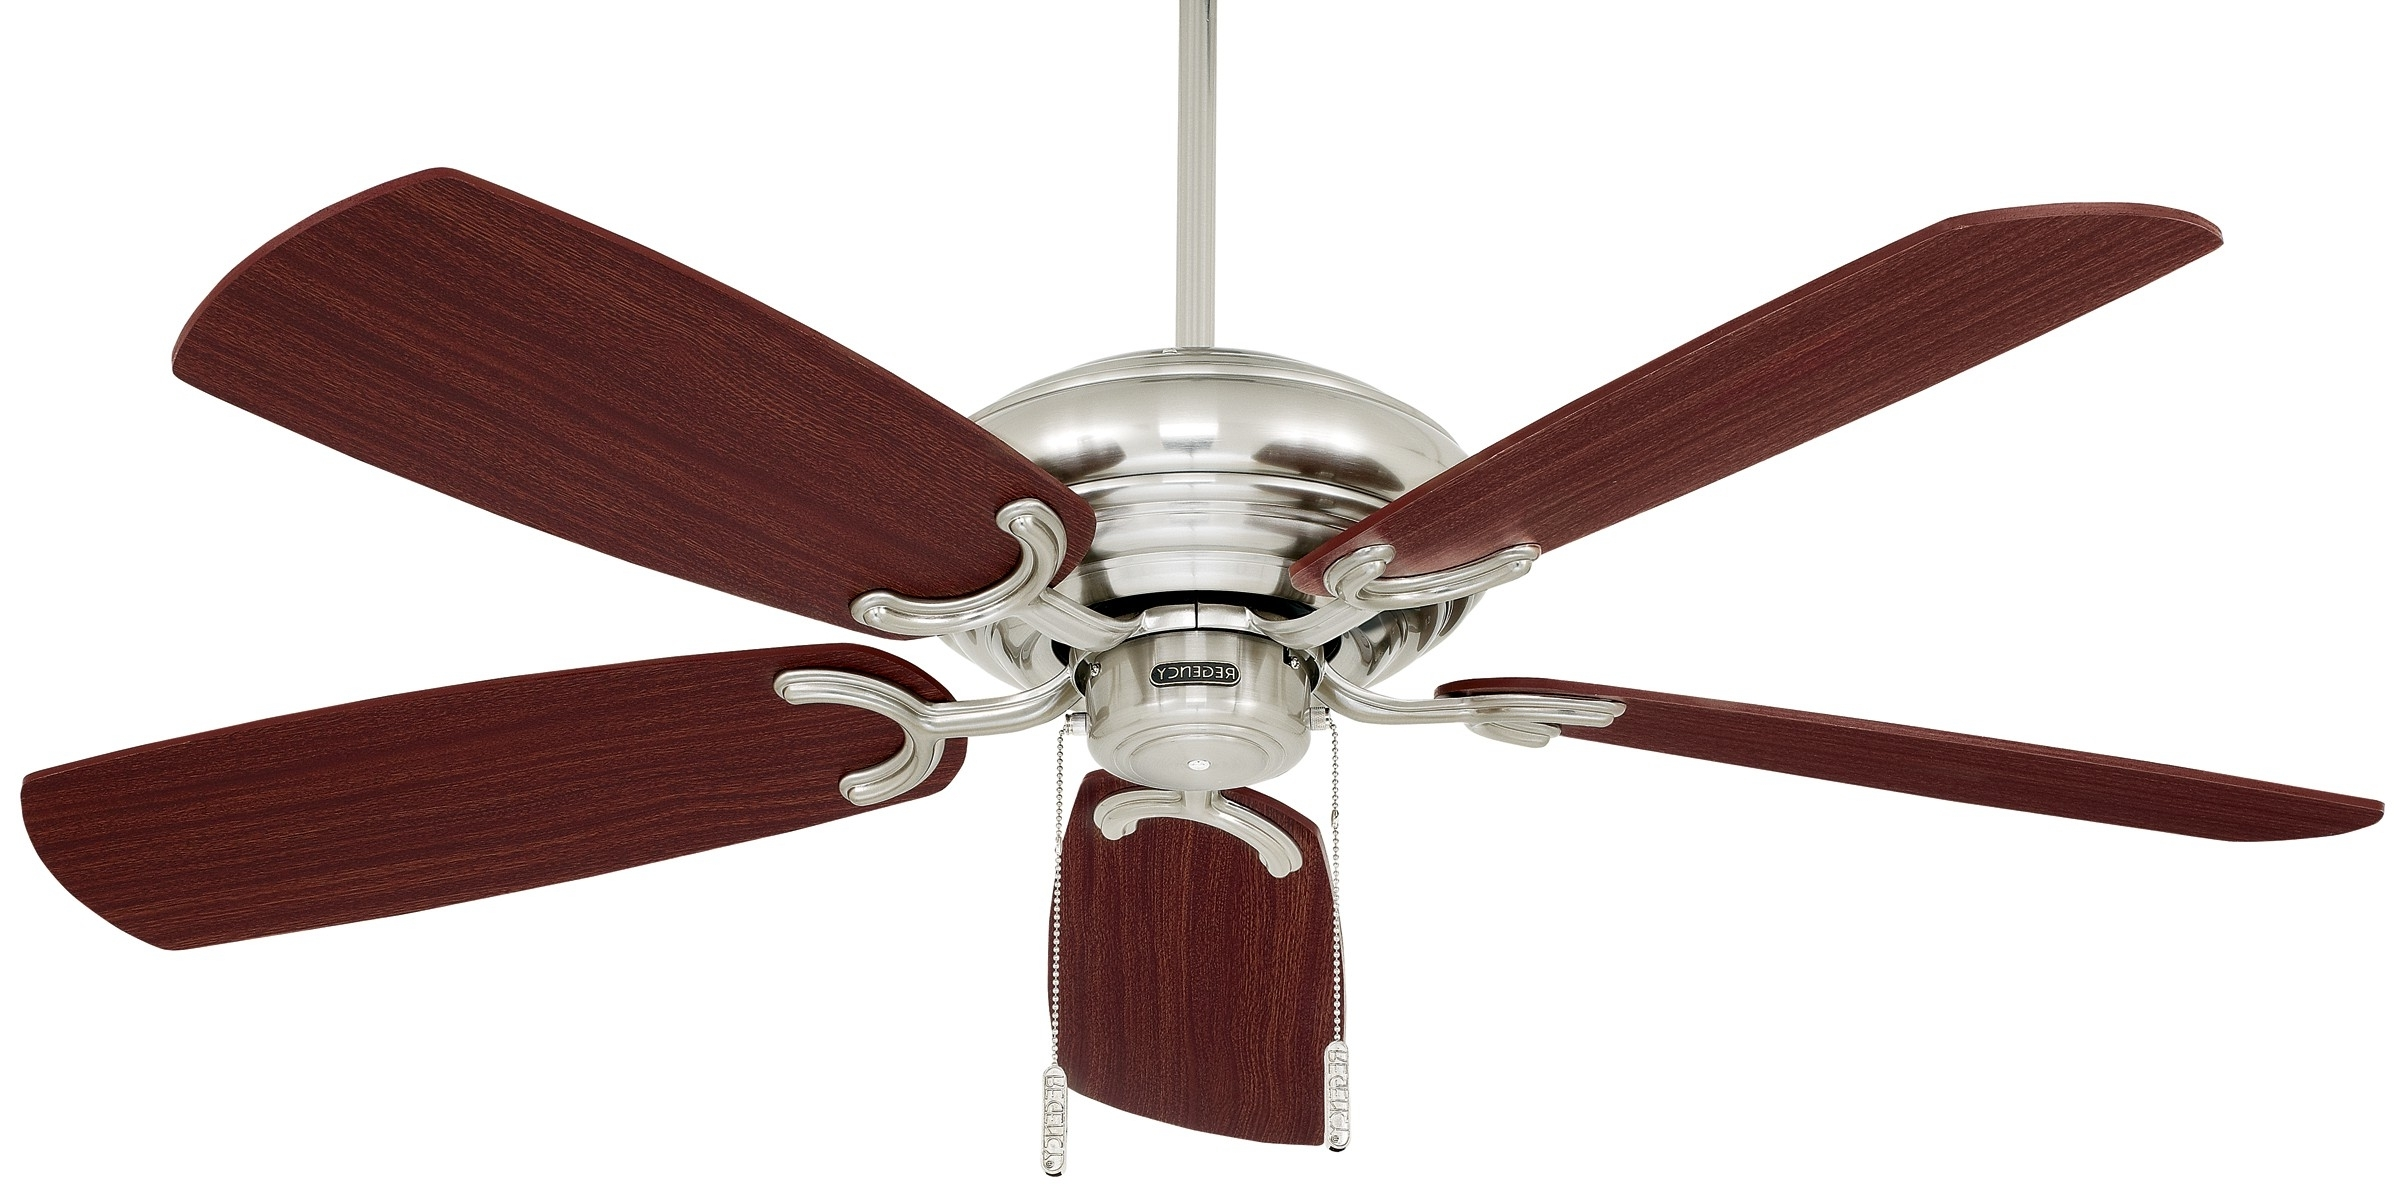 Latest Crammed Ceiling Fan With Uplight Envoy En2 Mood Glow Unipack Intended For Outdoor Ceiling Fans With Uplights (View 12 of 20)